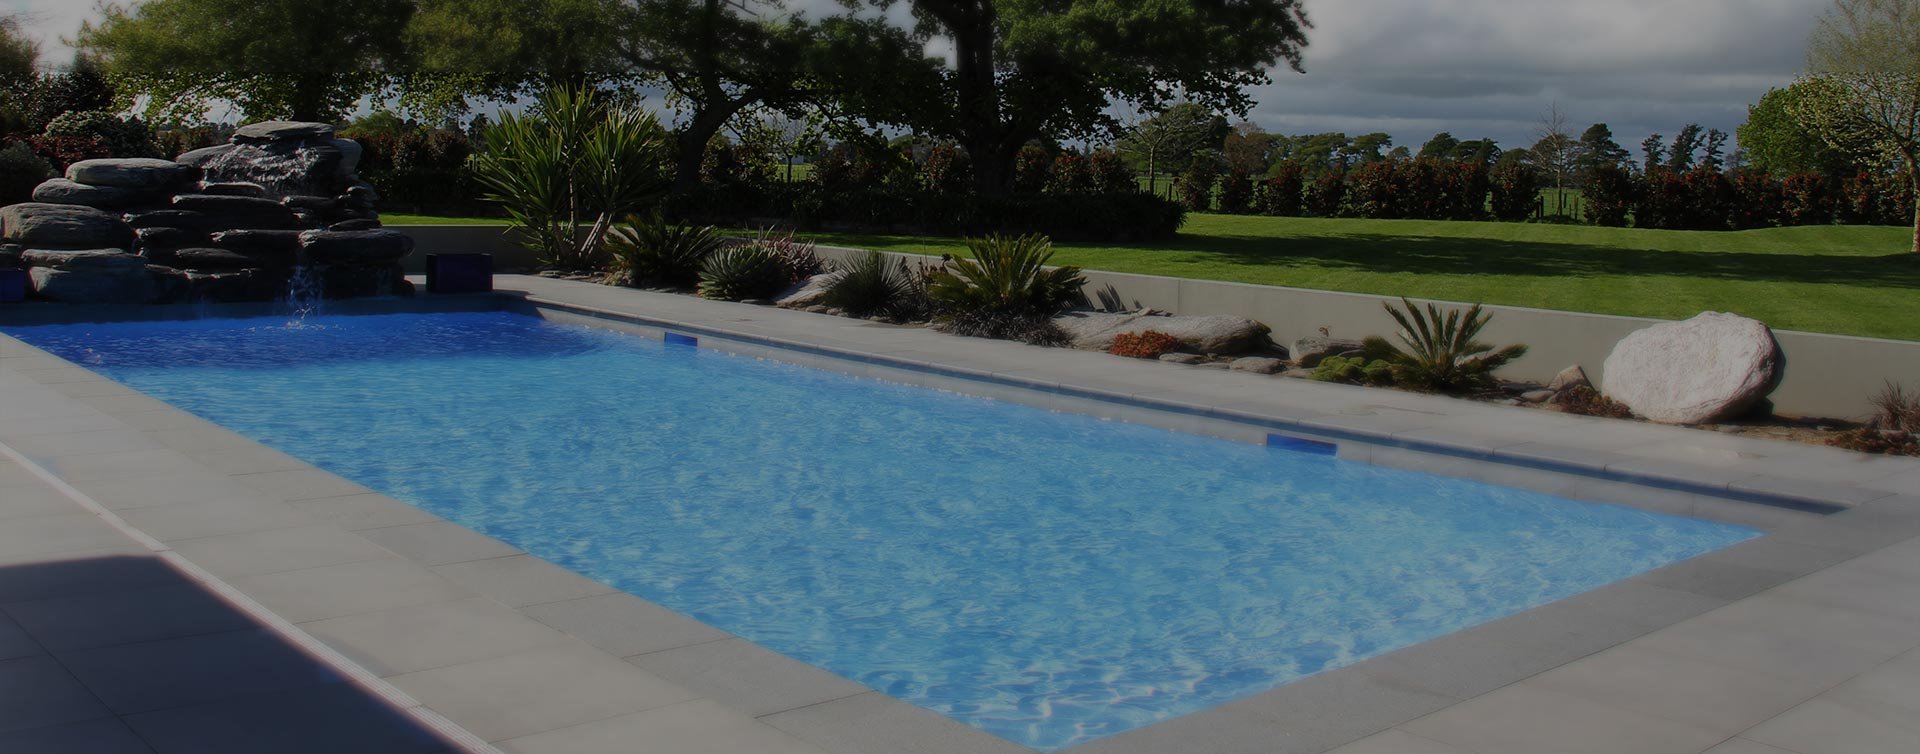 Hamilton pool installation in ground pools and landscaping for Above ground swimming pools nz